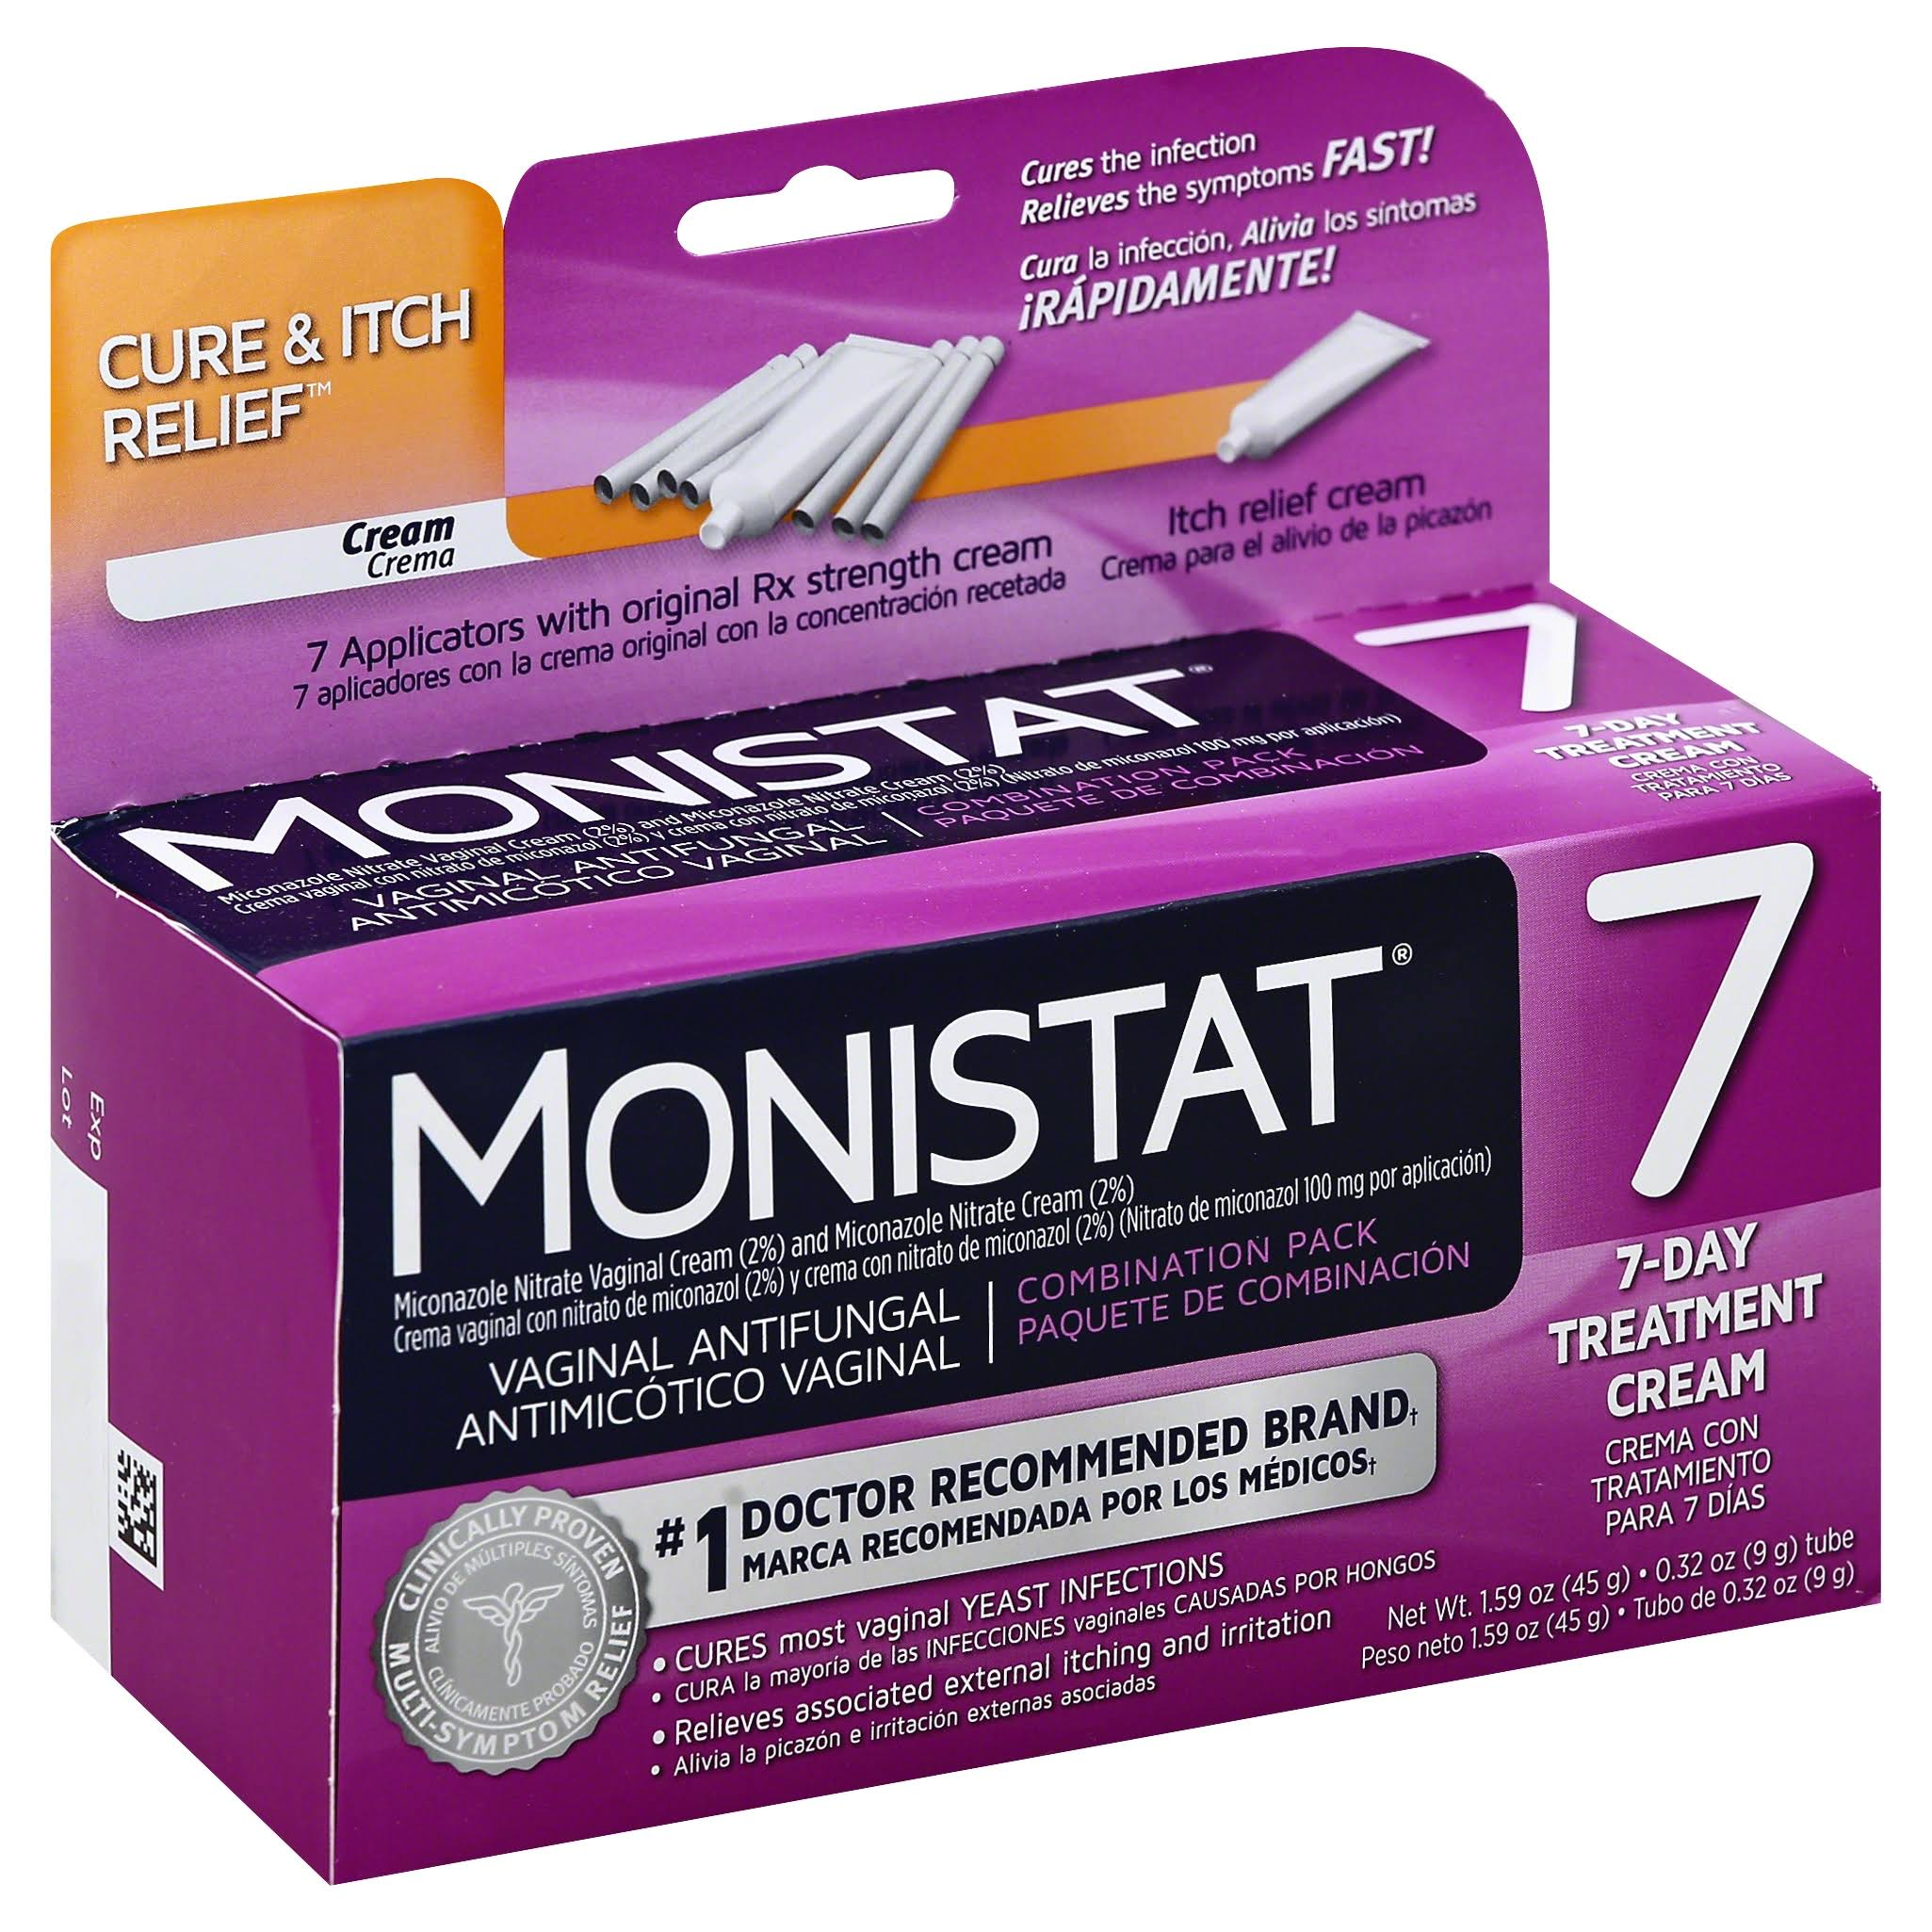 Monistat 7-Day Treatment Care